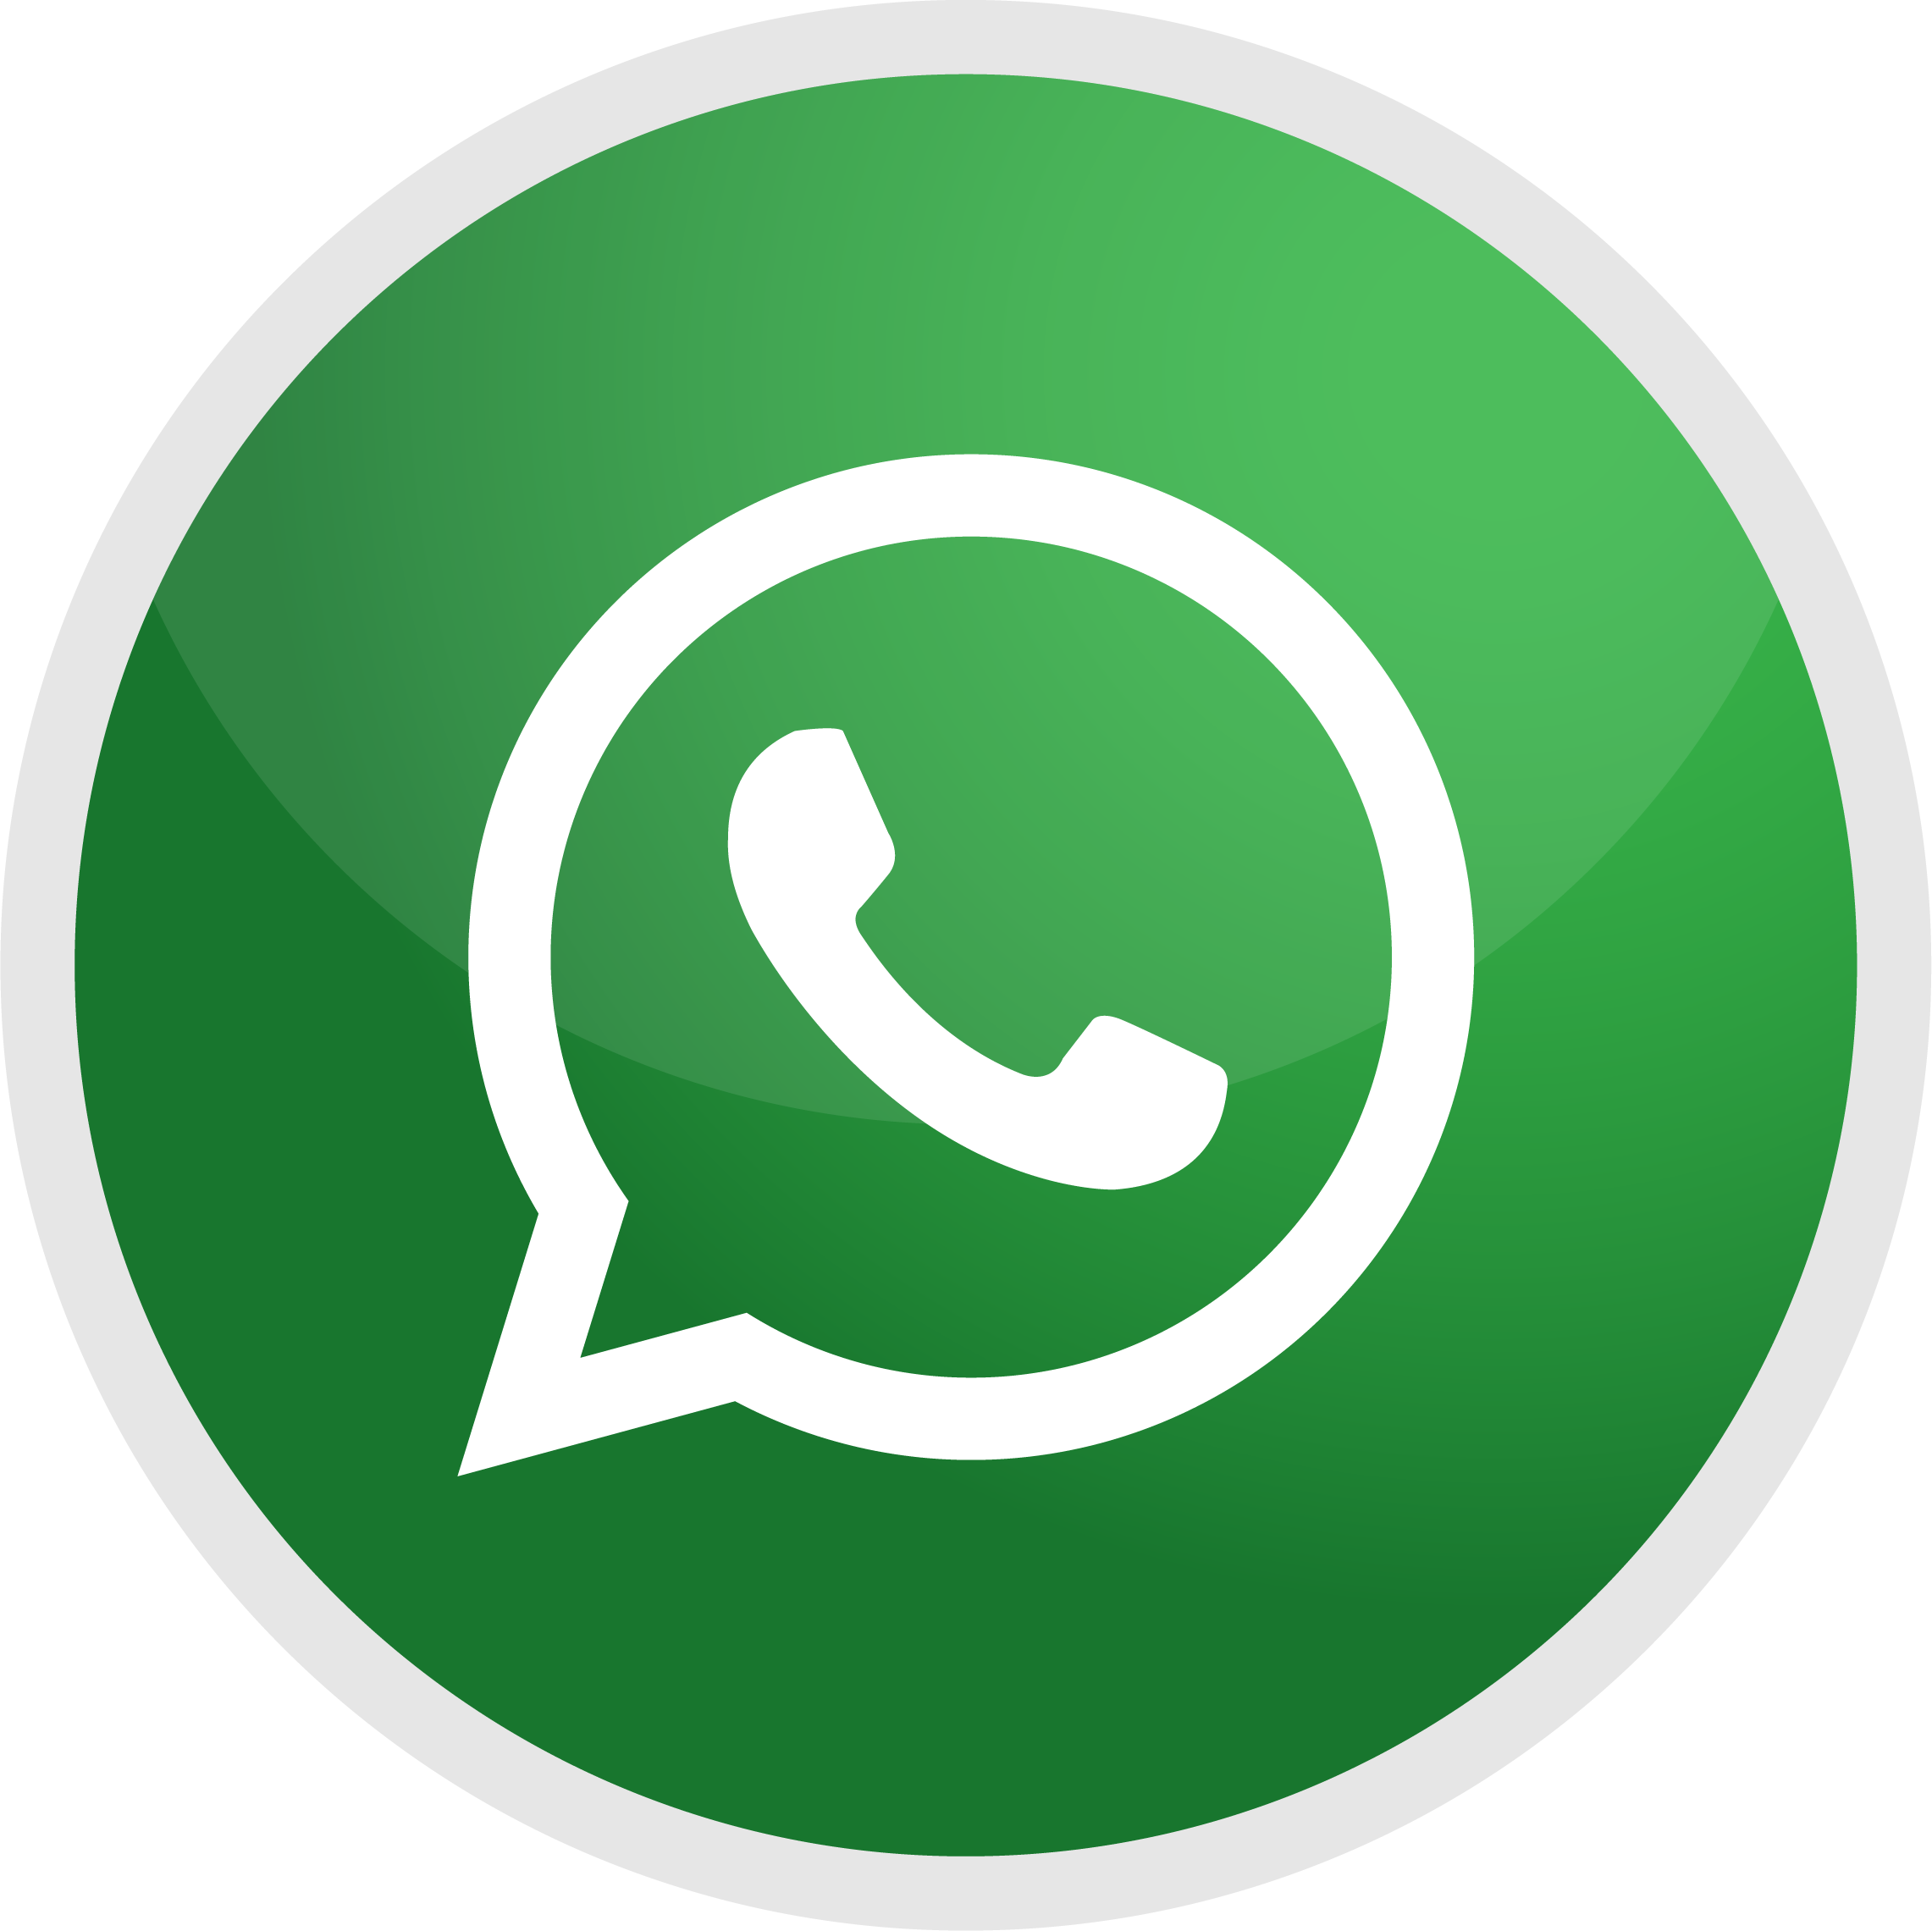 Whatsapp Images PNG 23832